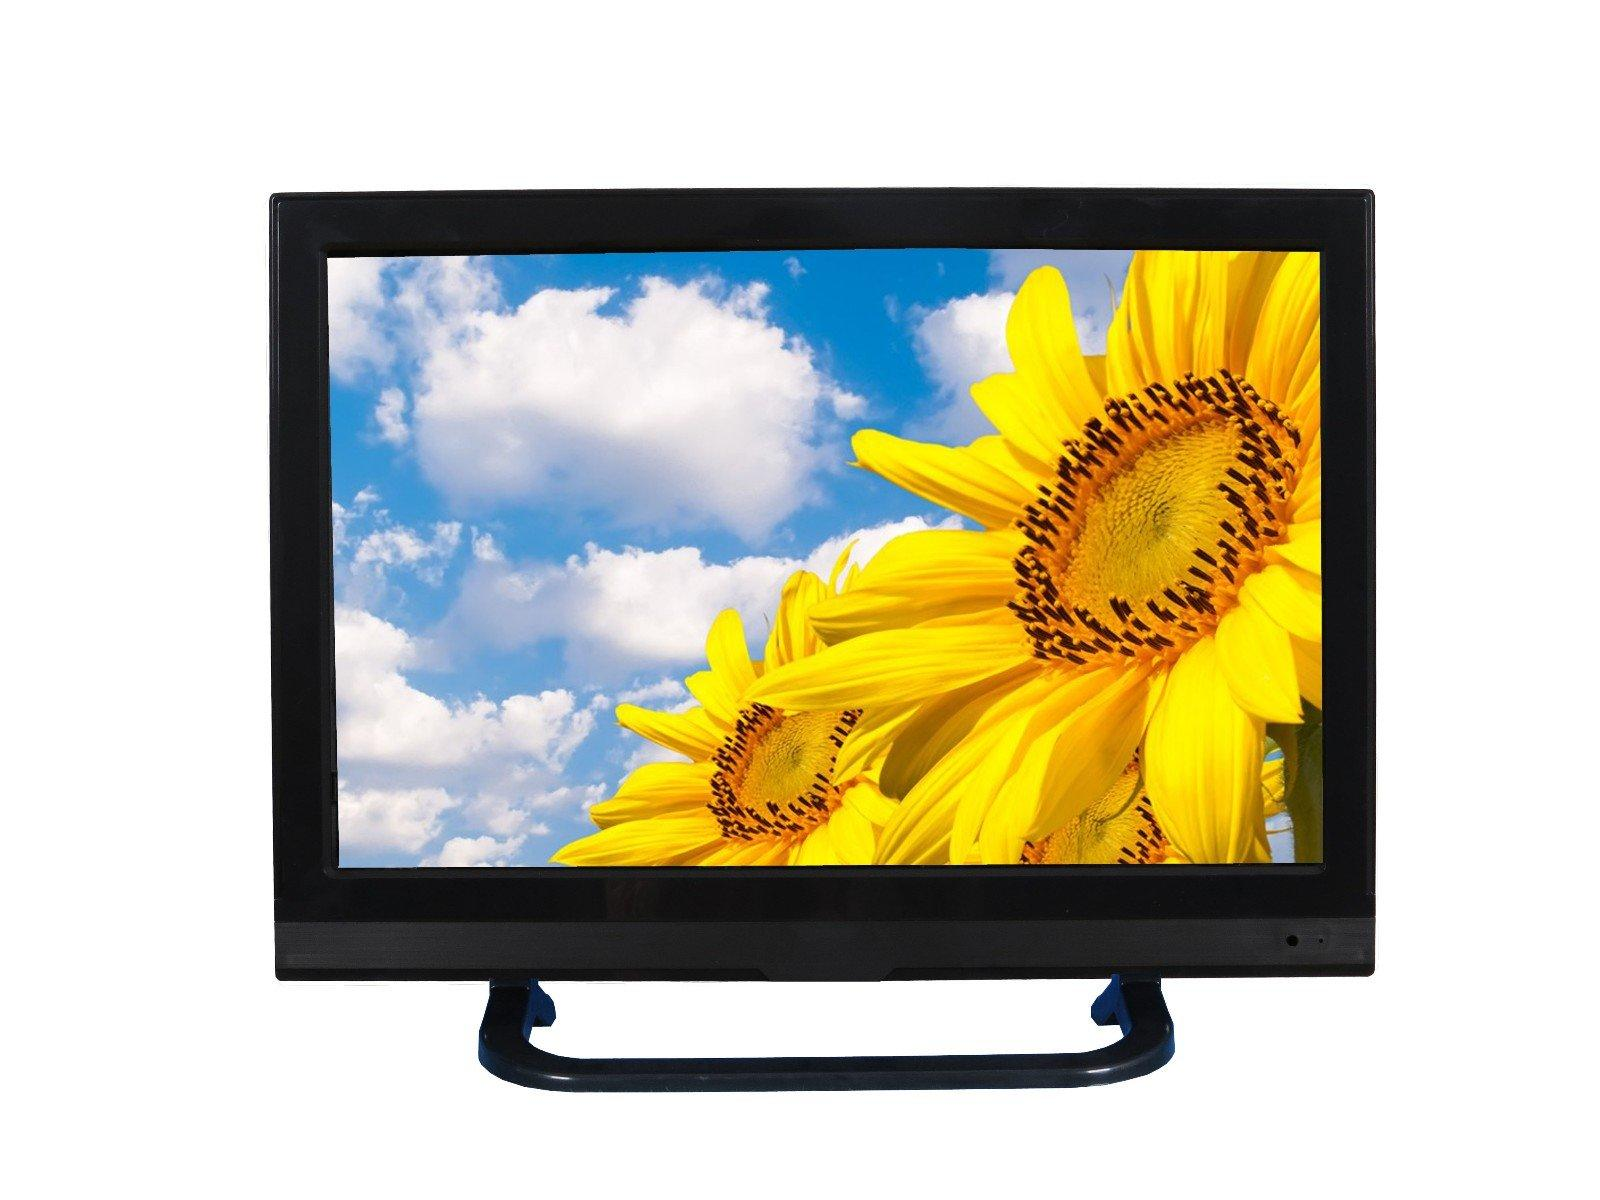 Xinyao LCD factory price 20 inch tv for sale manufacturer for lcd tv screen-1